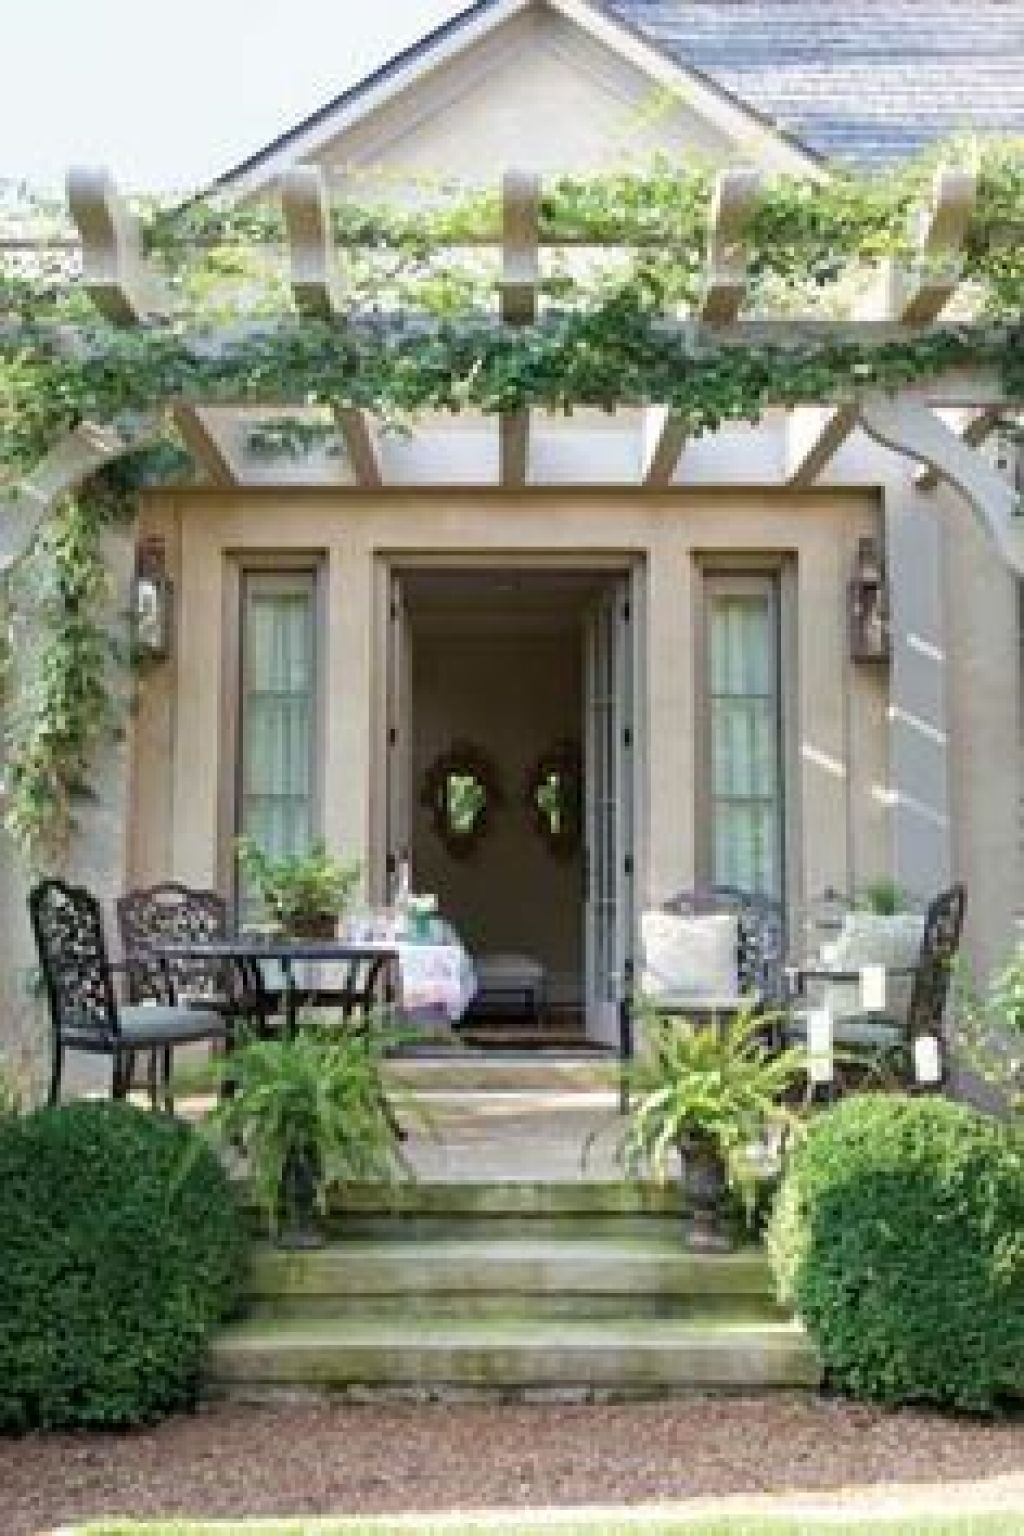 1000 ideas about front porch pergola on pinterest pergolas for Patio porch designs